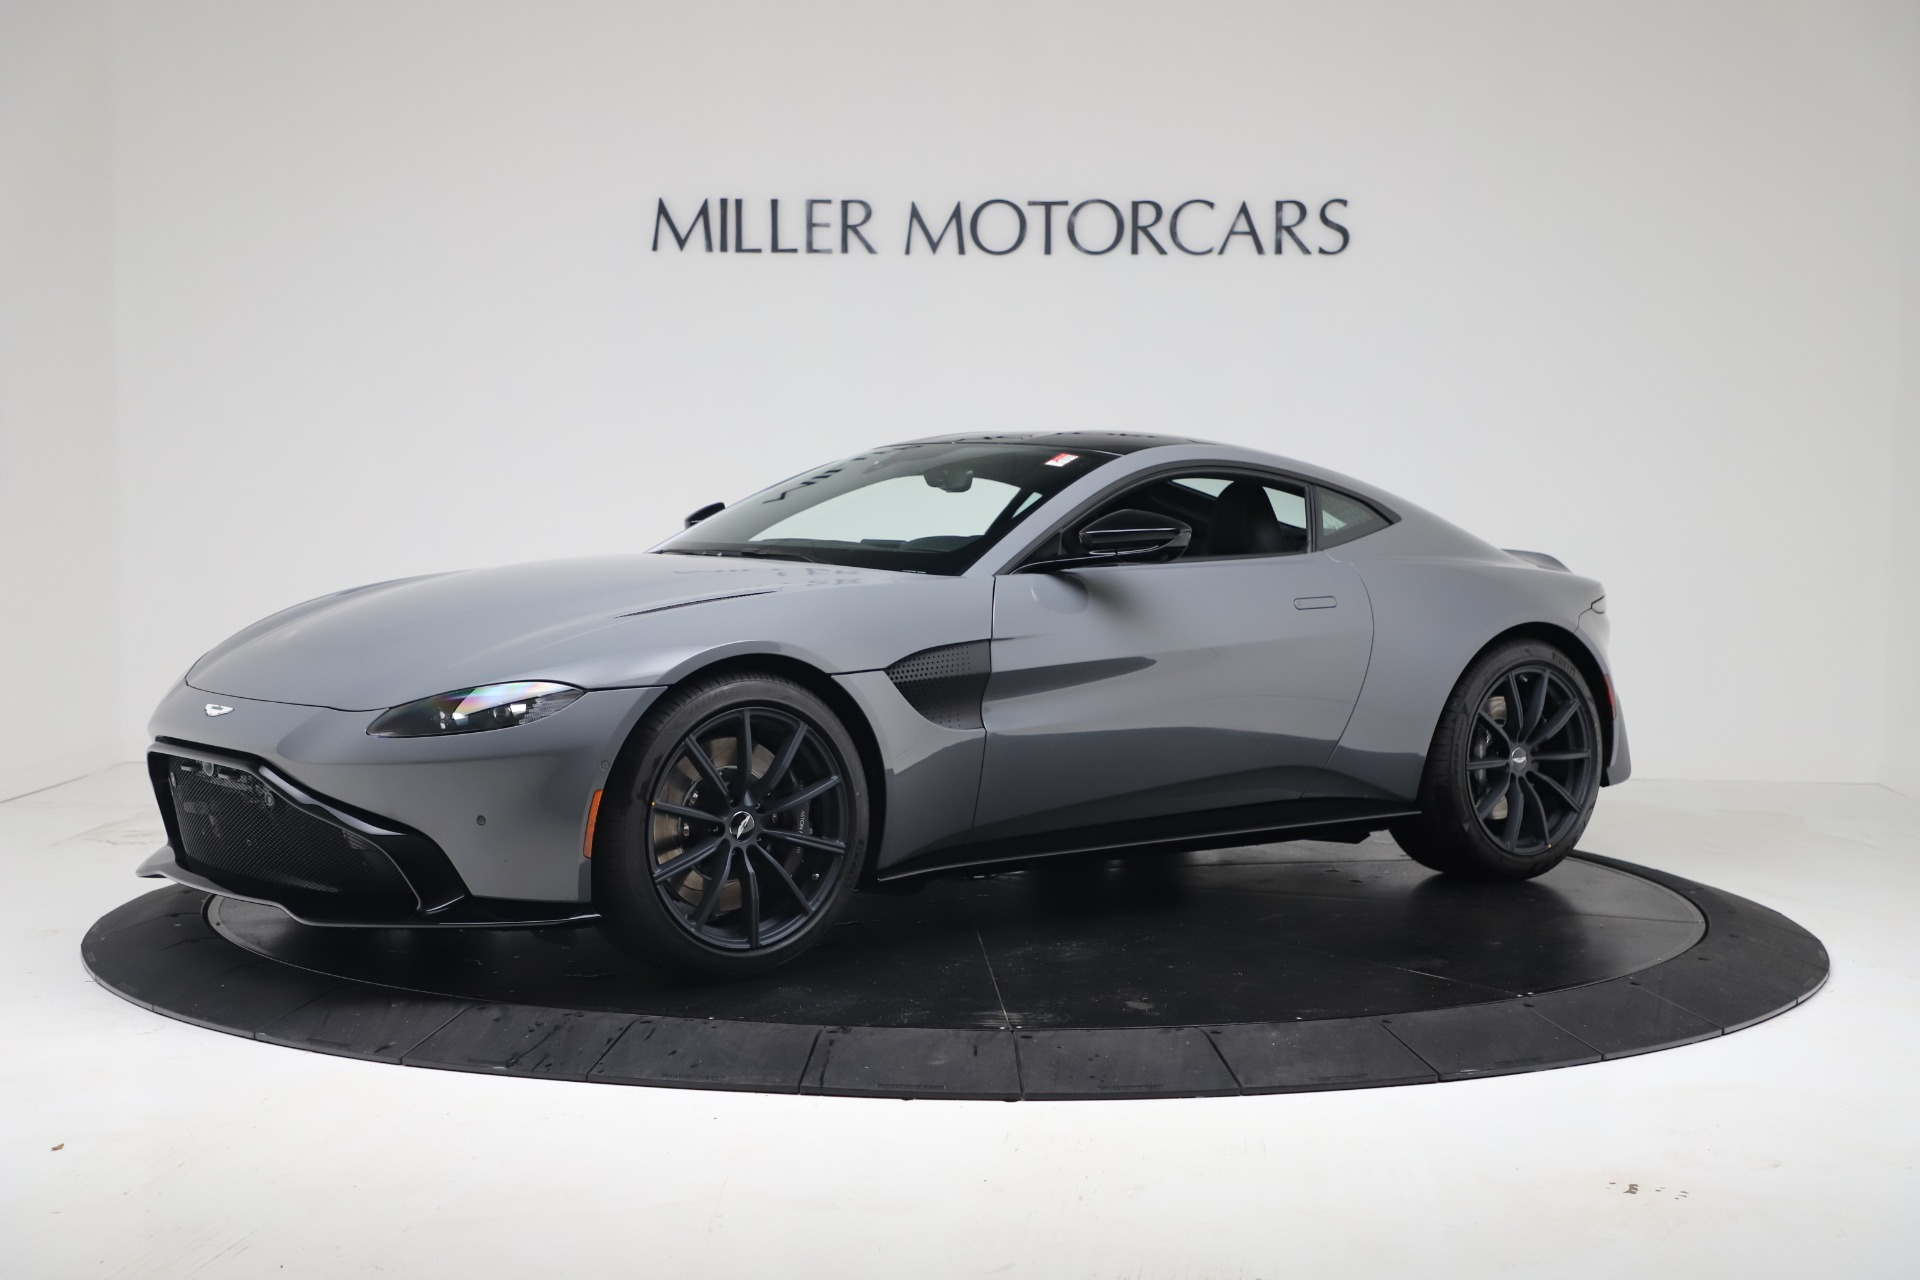 New 2020 Aston Martin Vantage V8 For Sale In Westport, CT 3482_main